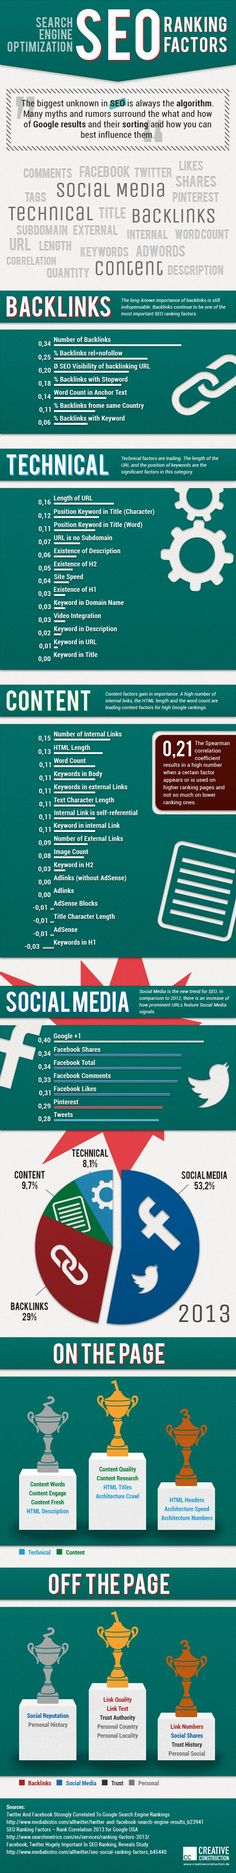 #SEO ist tot - long live Social Media? #Ranking